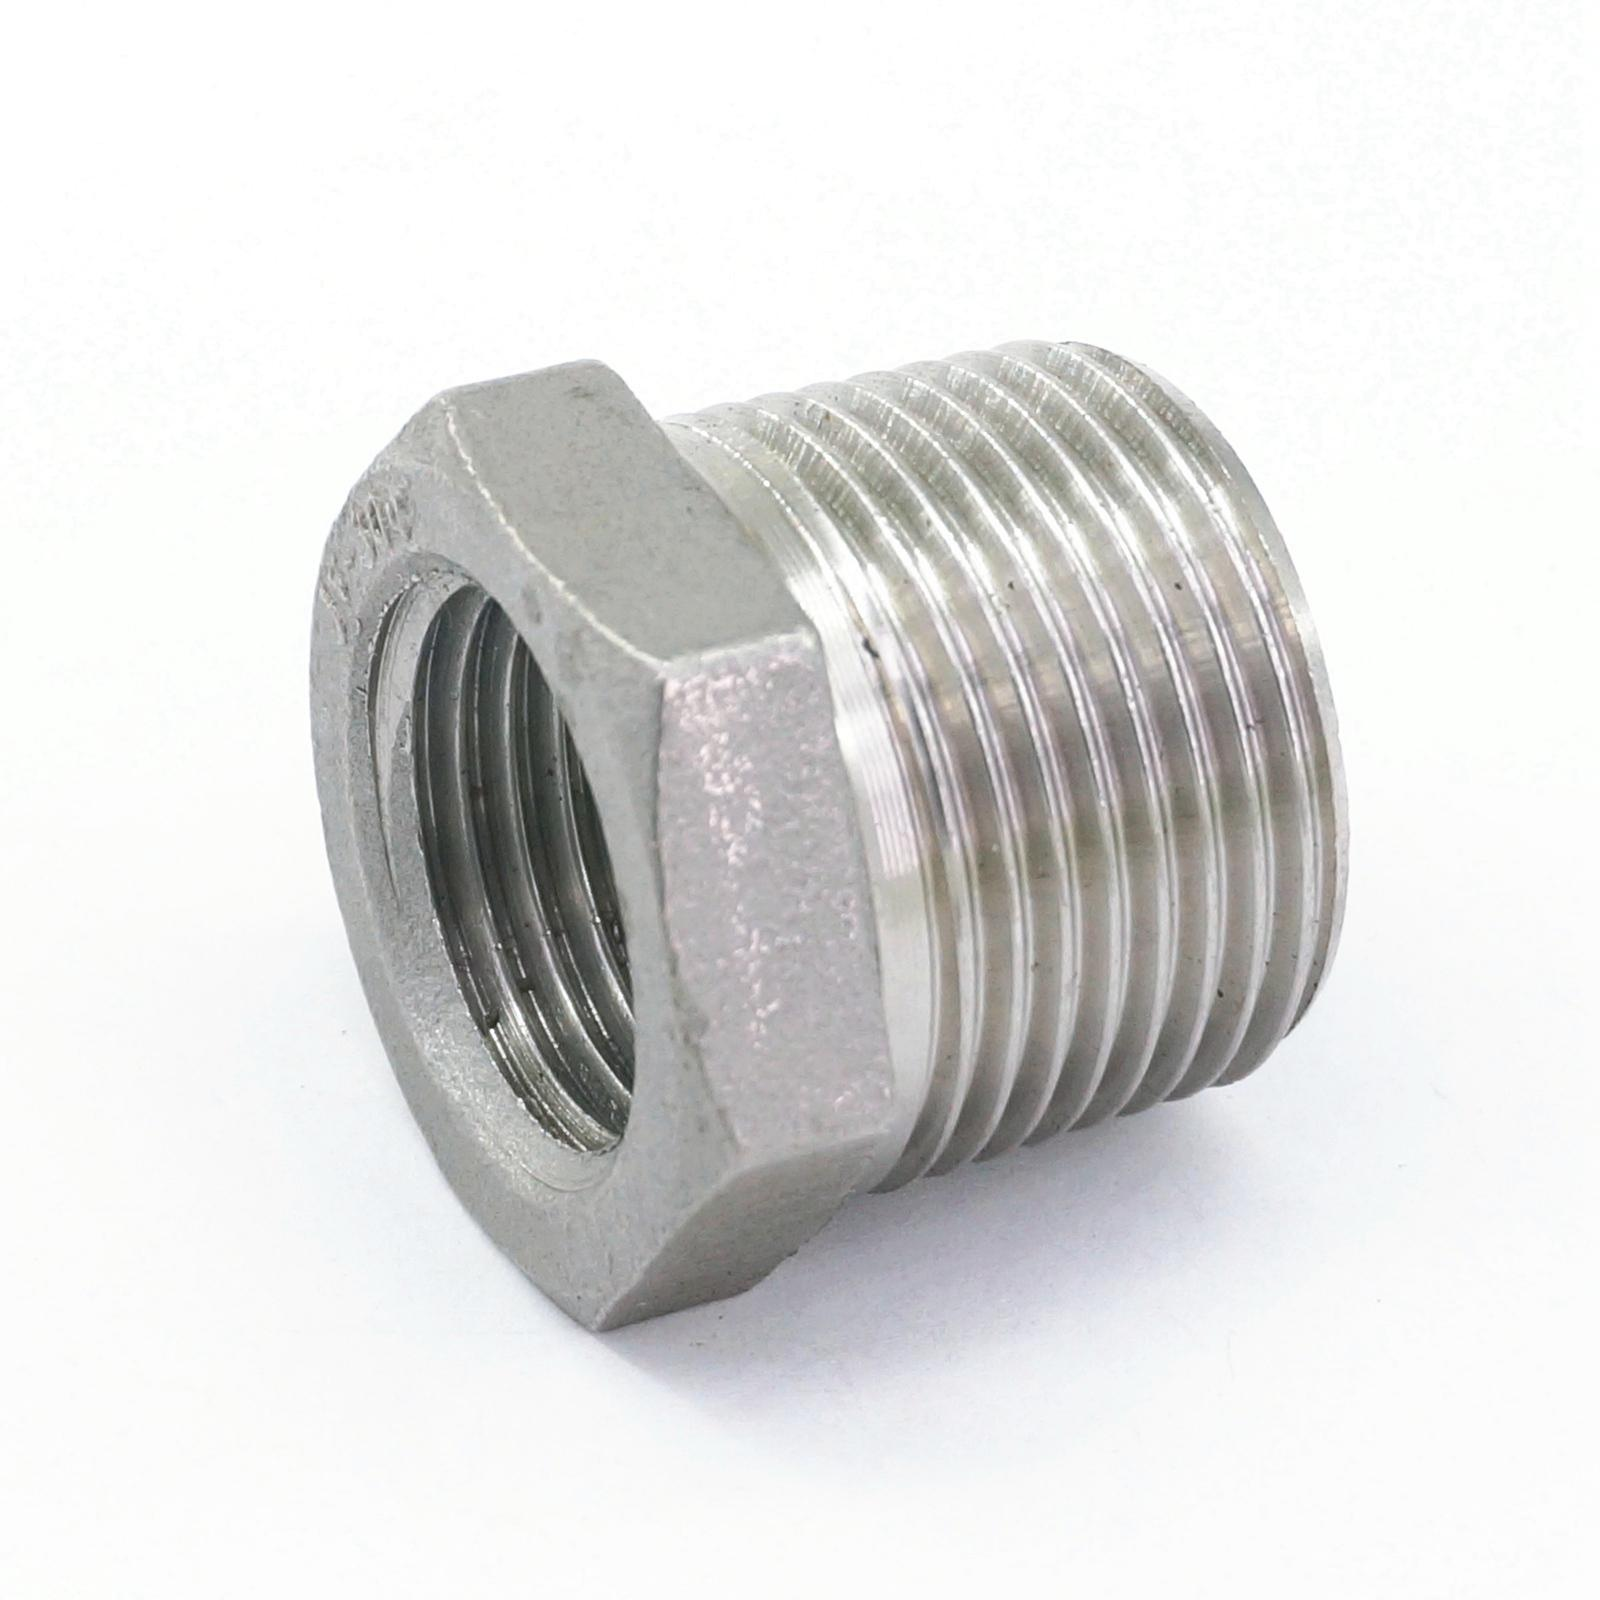 304 Stainless Steel Reducer 3/4 BSP Male Thread to 1/2 BSP Female Thread Reducing Bush adapter Fitting Gas Air Water Fuel